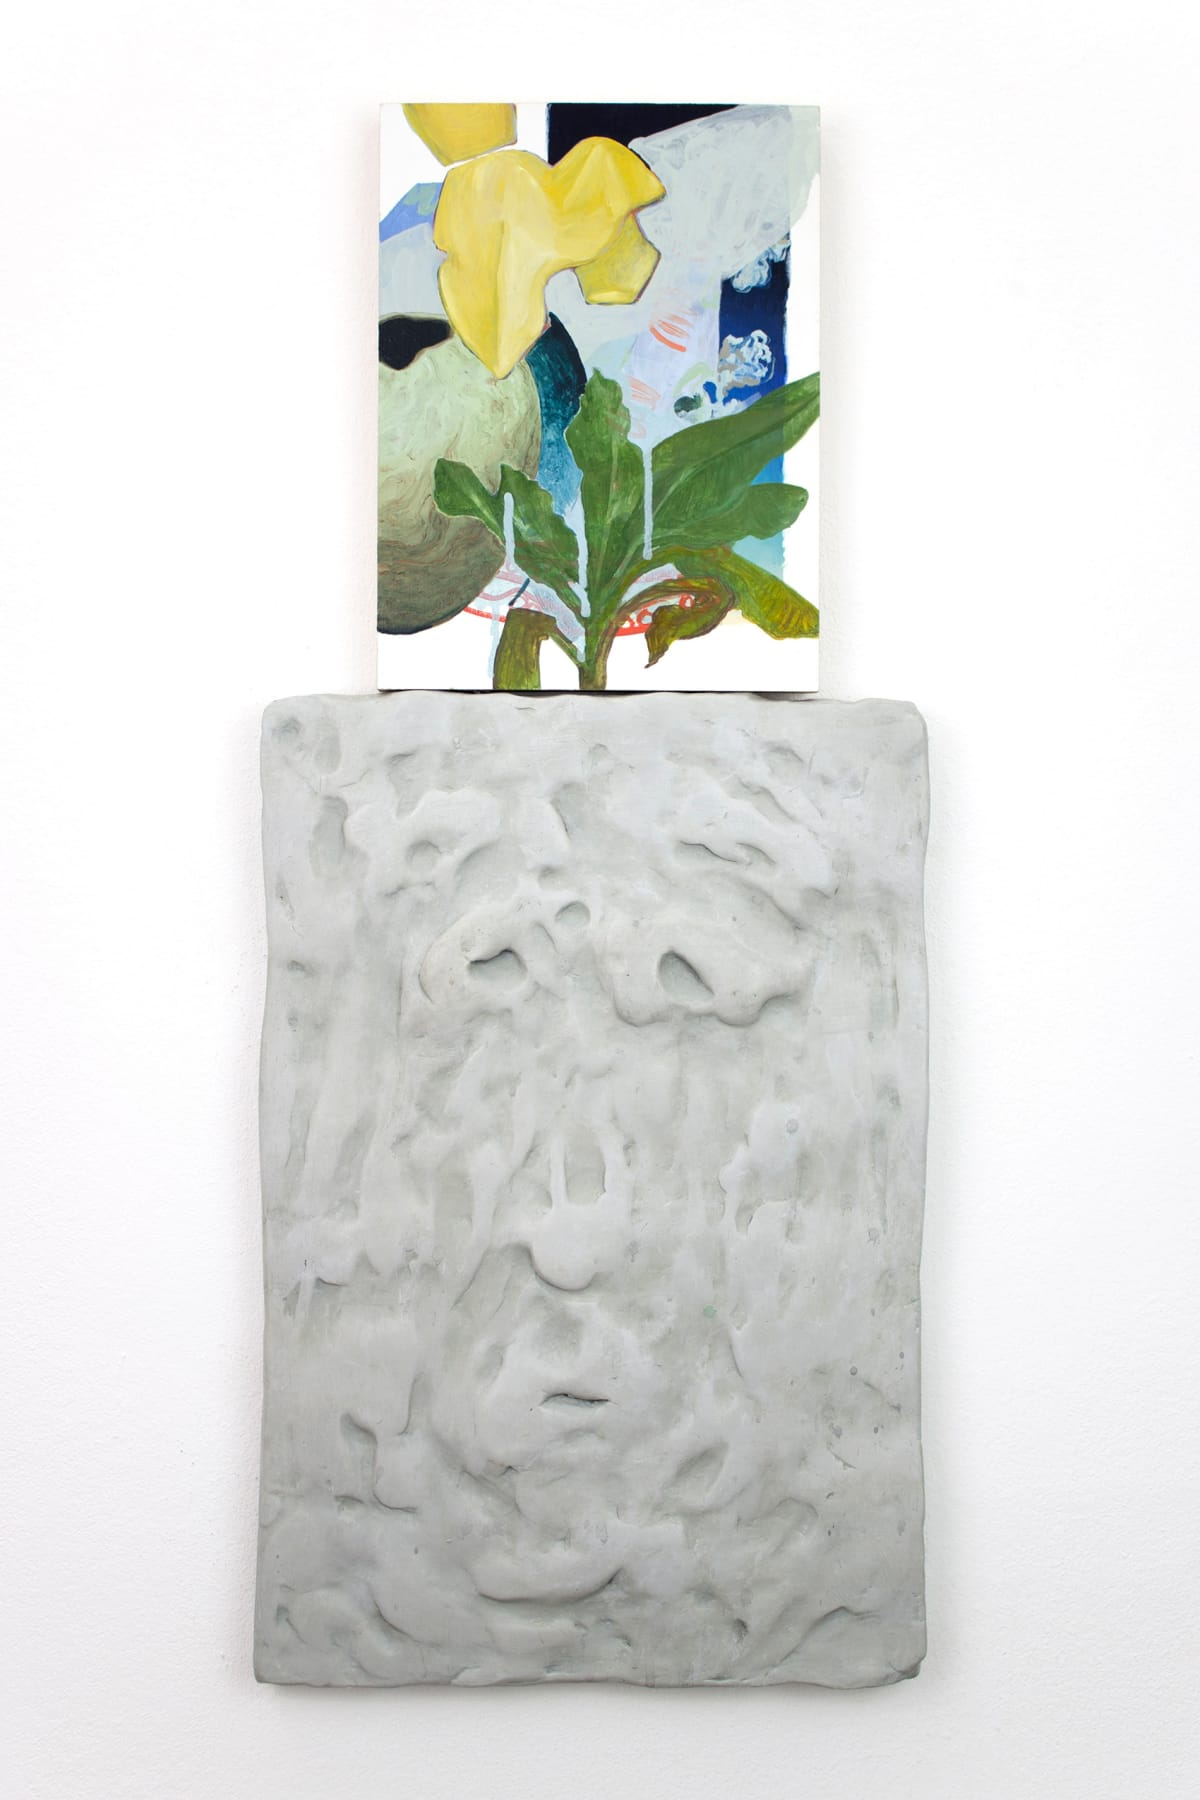 titania seidl, lukas thaler, artist, artwork shows a relief of a face with a caricature facial expression ontop of its head is a painting like a thought bubble showing plants and flowers and shapes